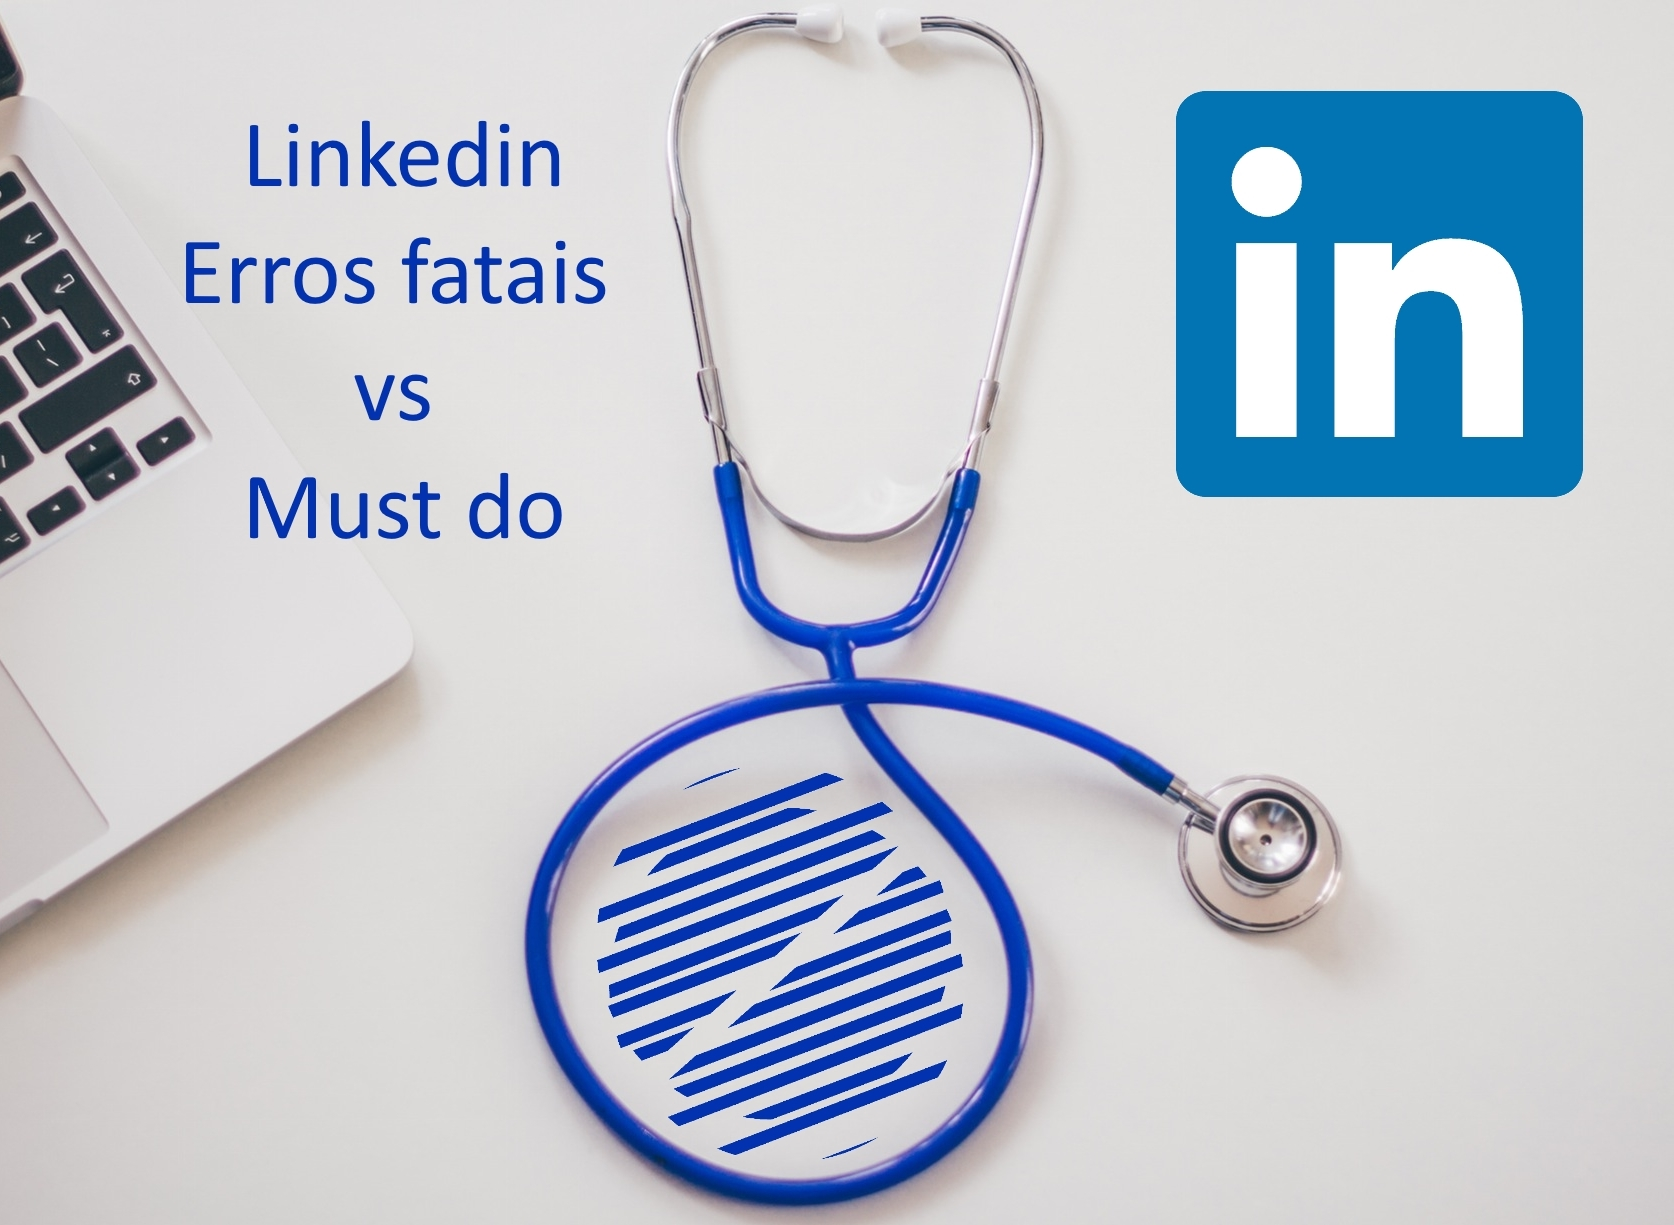 Linkedin: Erros fatais vs Must do